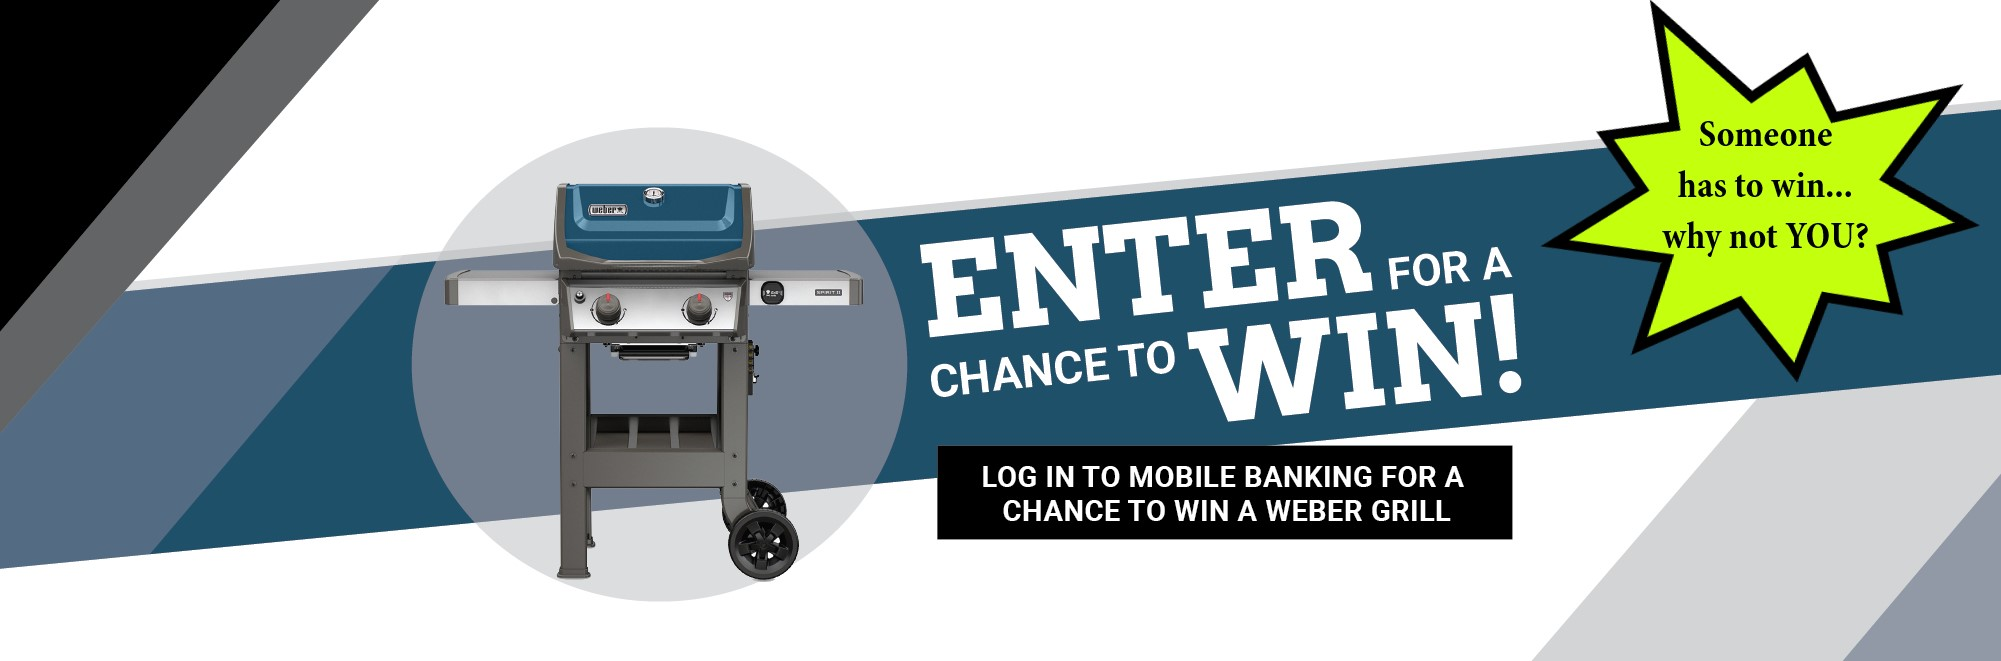 Login to mobile banking for a chance to win a Weber Grill!